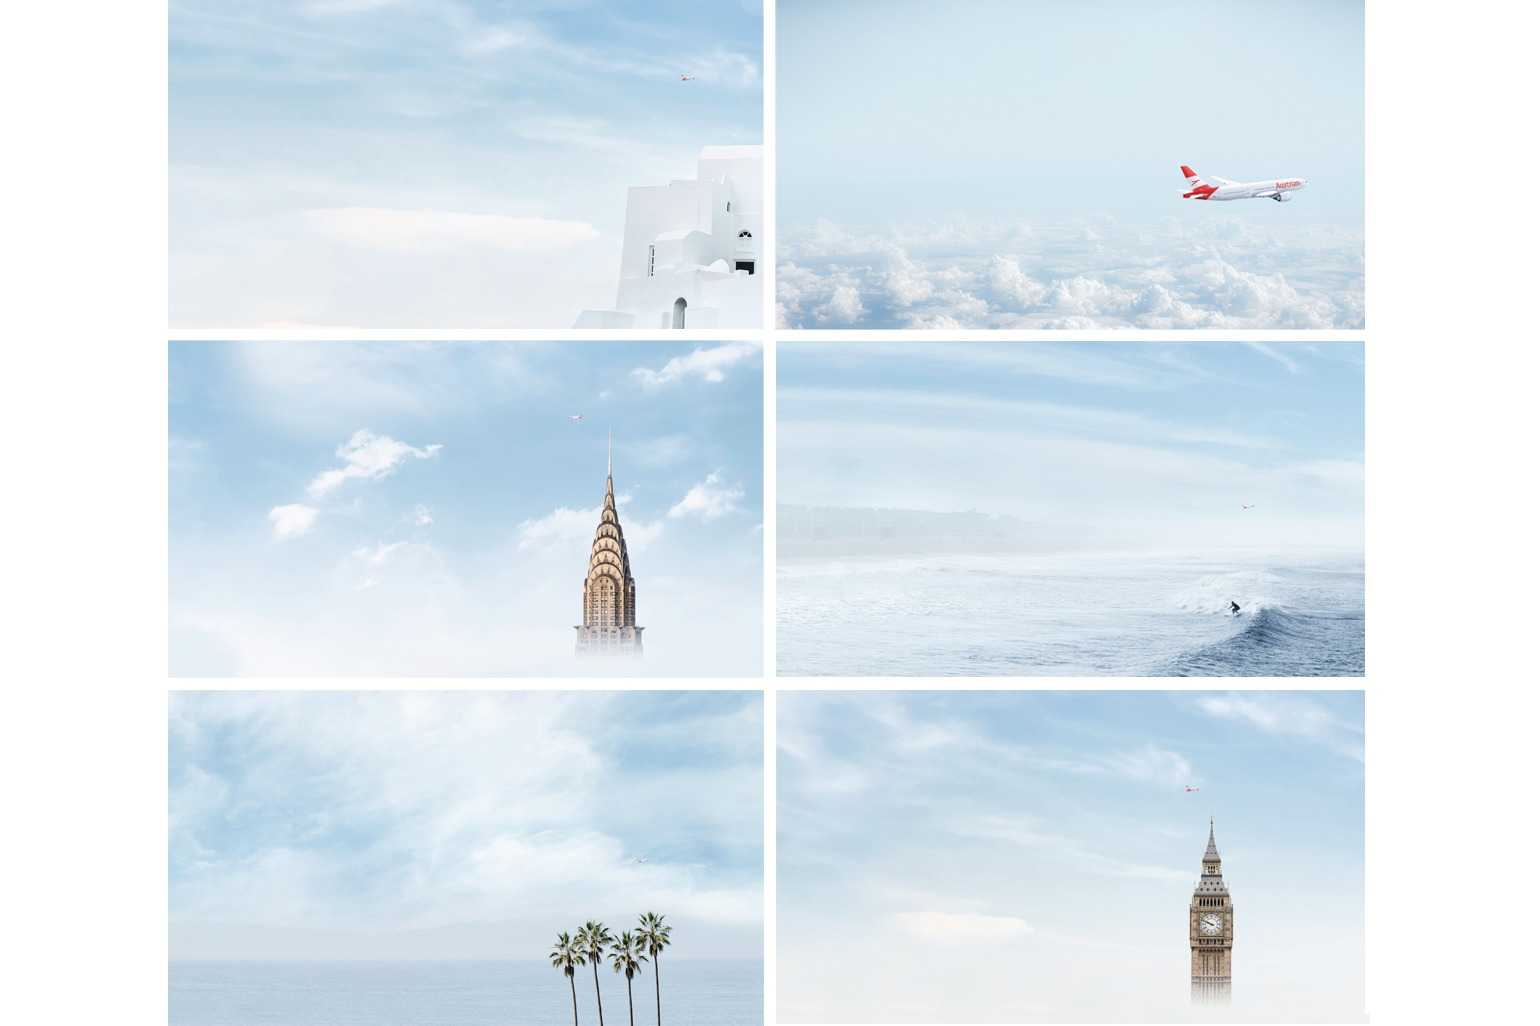 Austrian Airlines Employer Branding Visuals fuer individuelle Stelleninserate